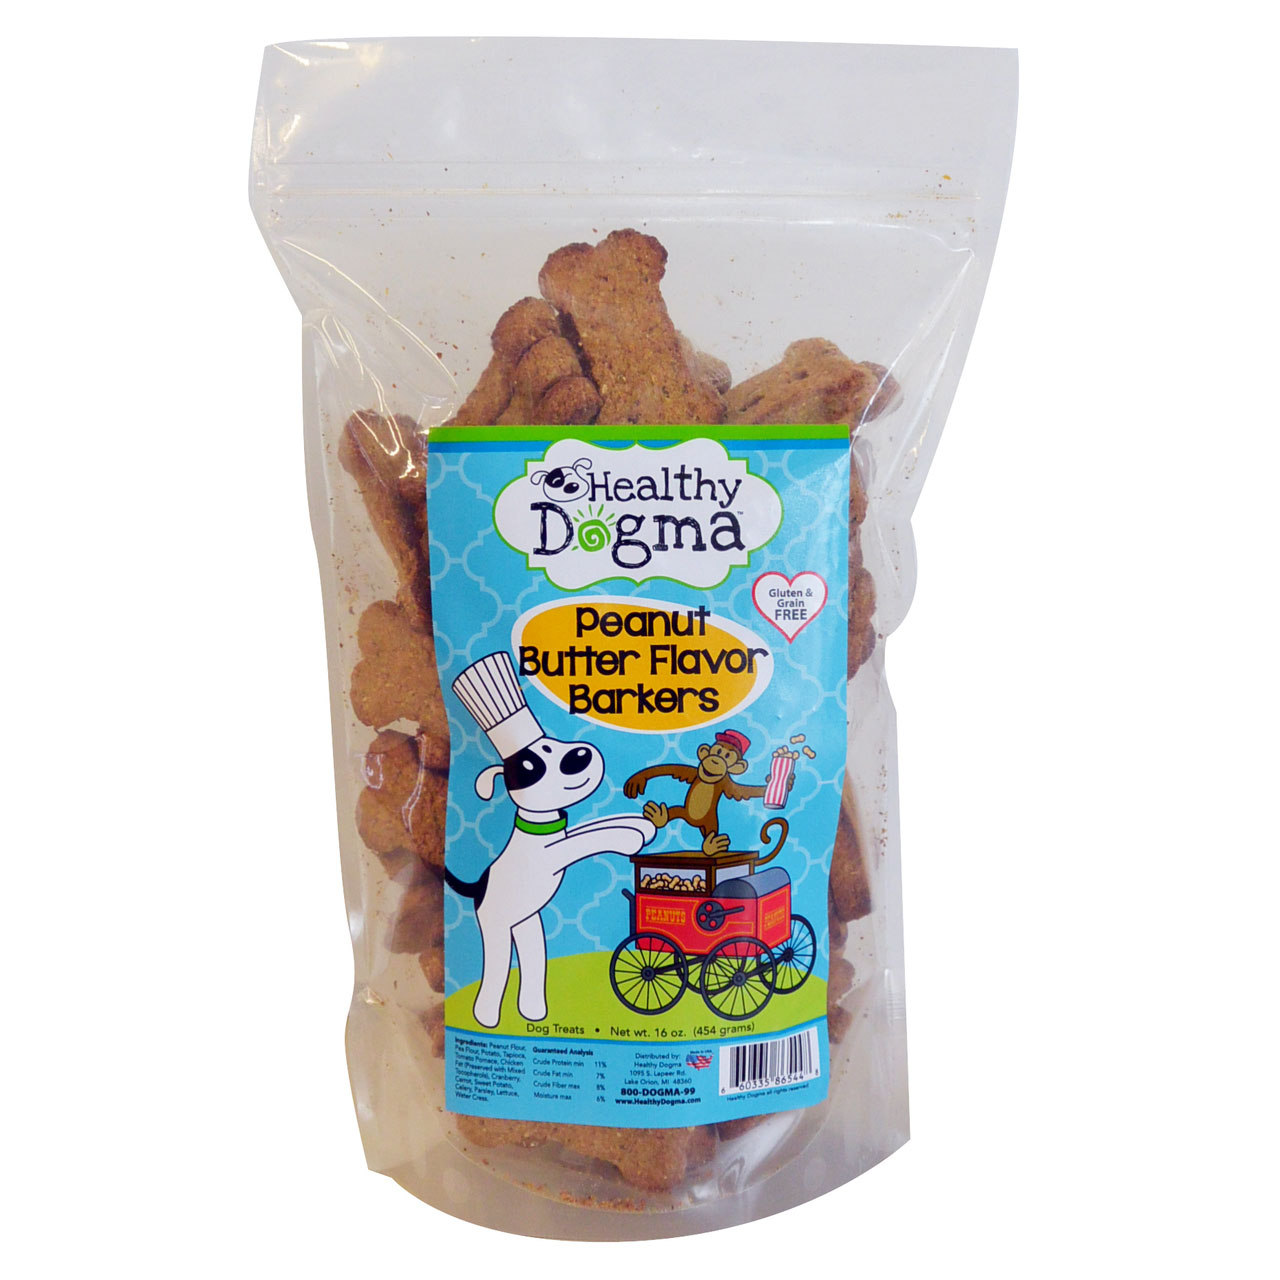 Healthy Dogma Peanut Butter Treats 16 oz. Bag